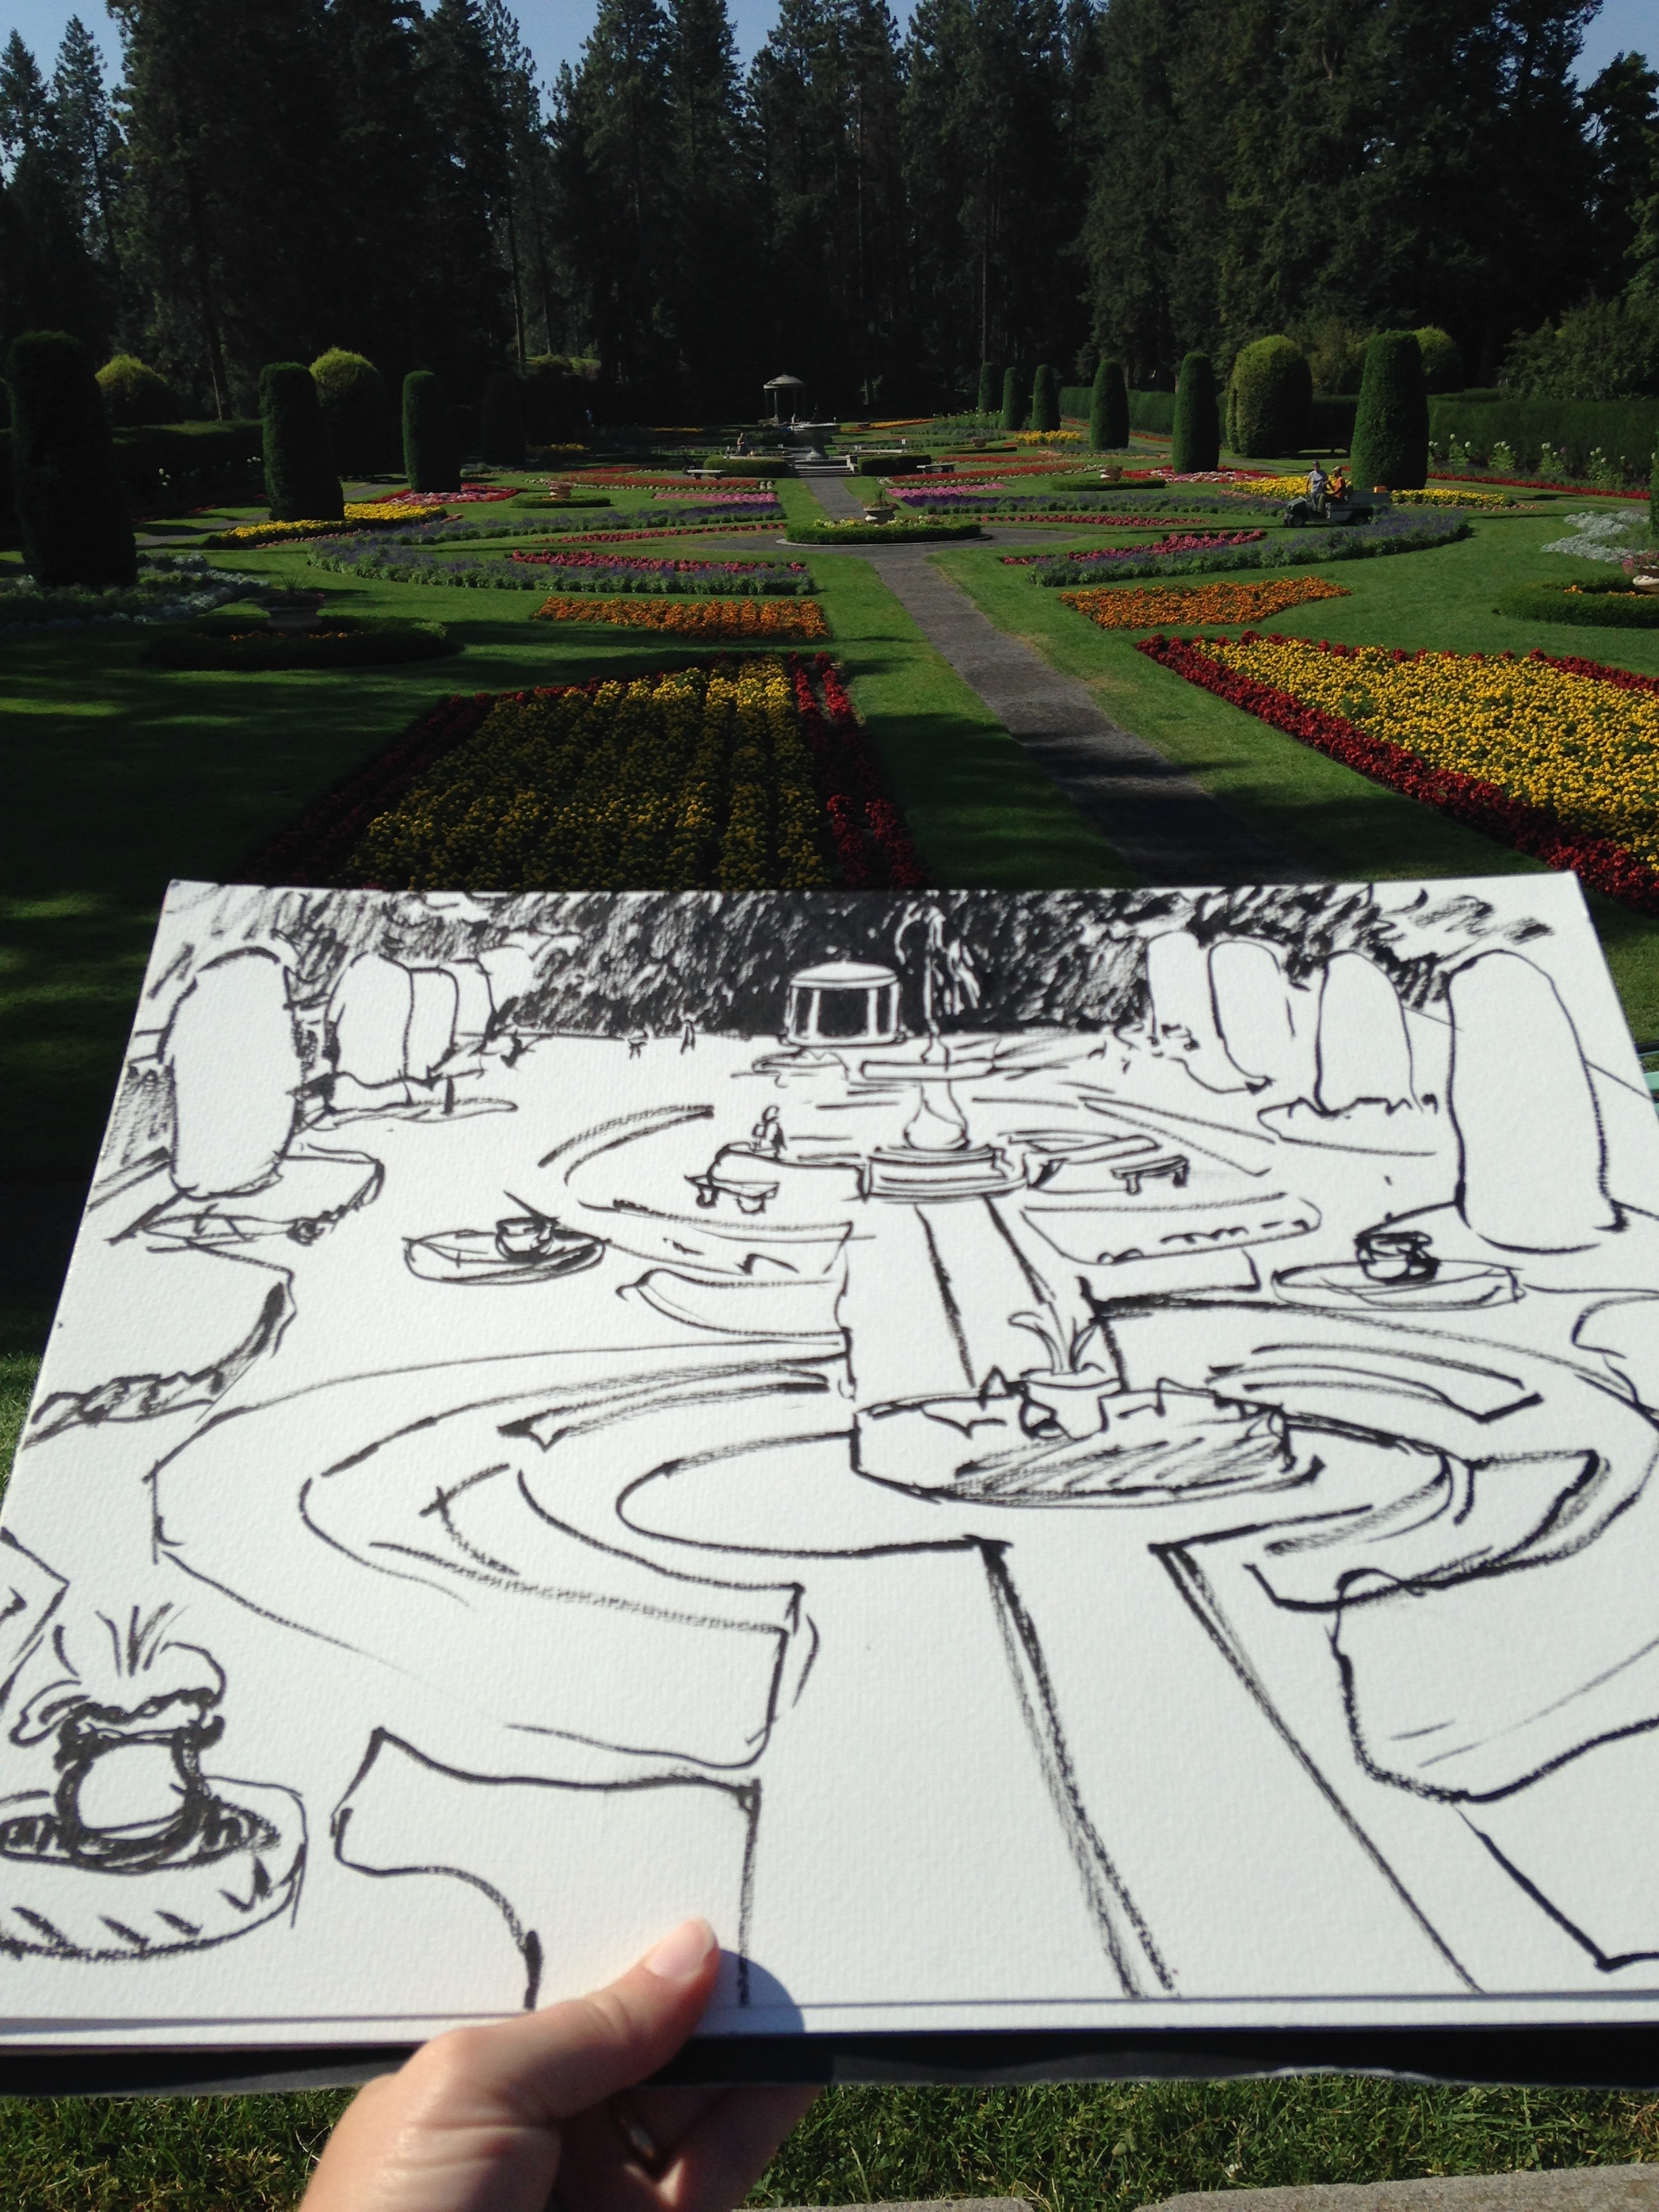 My pen sketch of the garden before adding paint. I used a Pentel Pocket brush pen, which I am madly involved with.